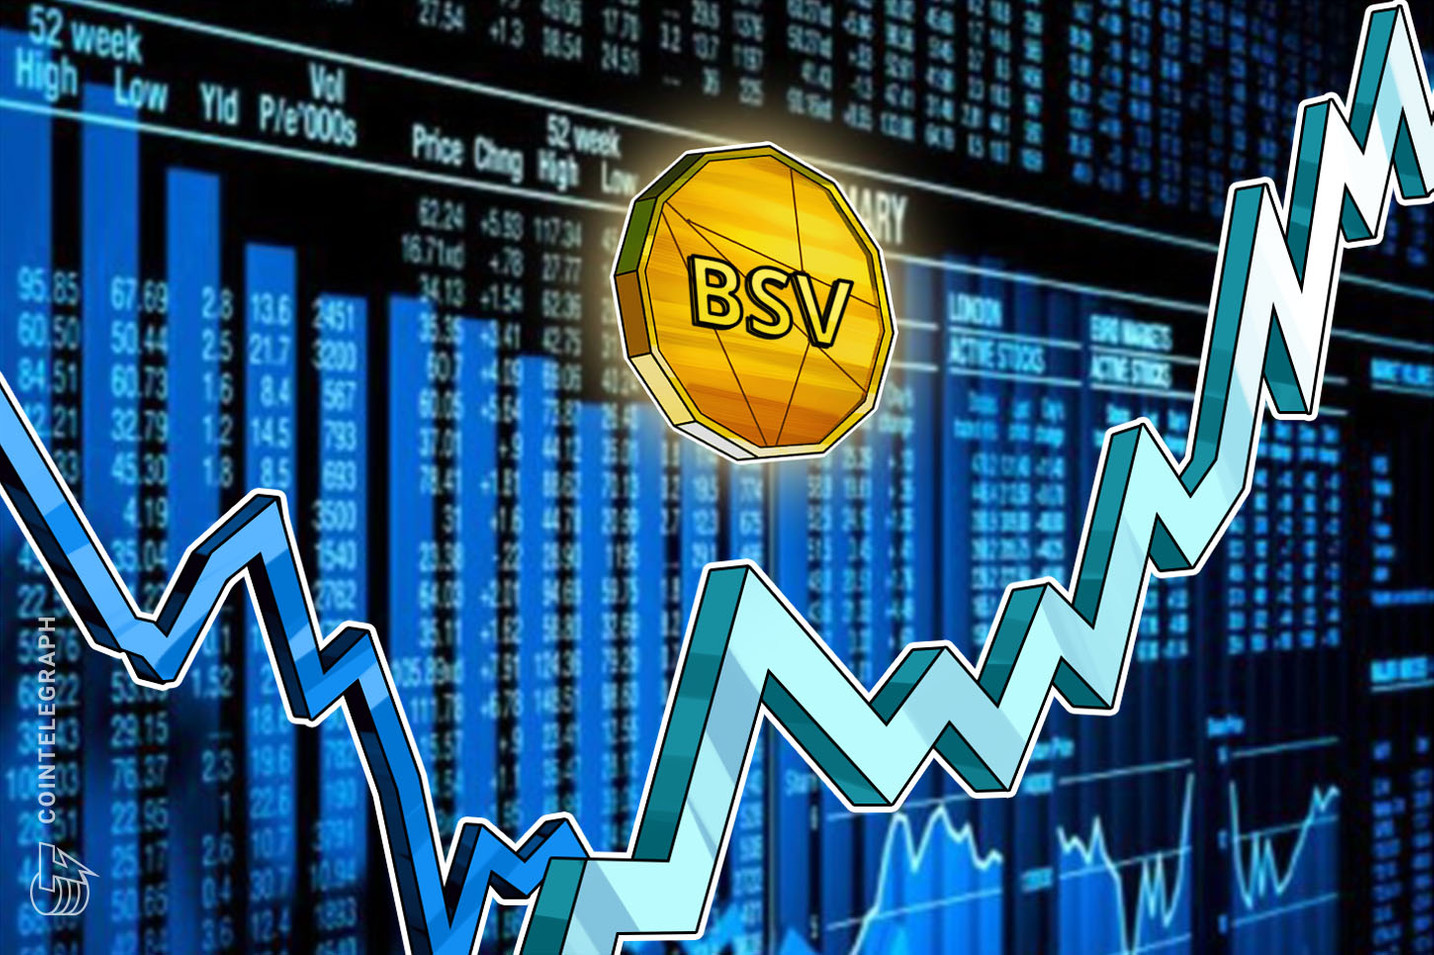 Organic growth? Bitcoin SV activity up 761% ahead of BSV conference